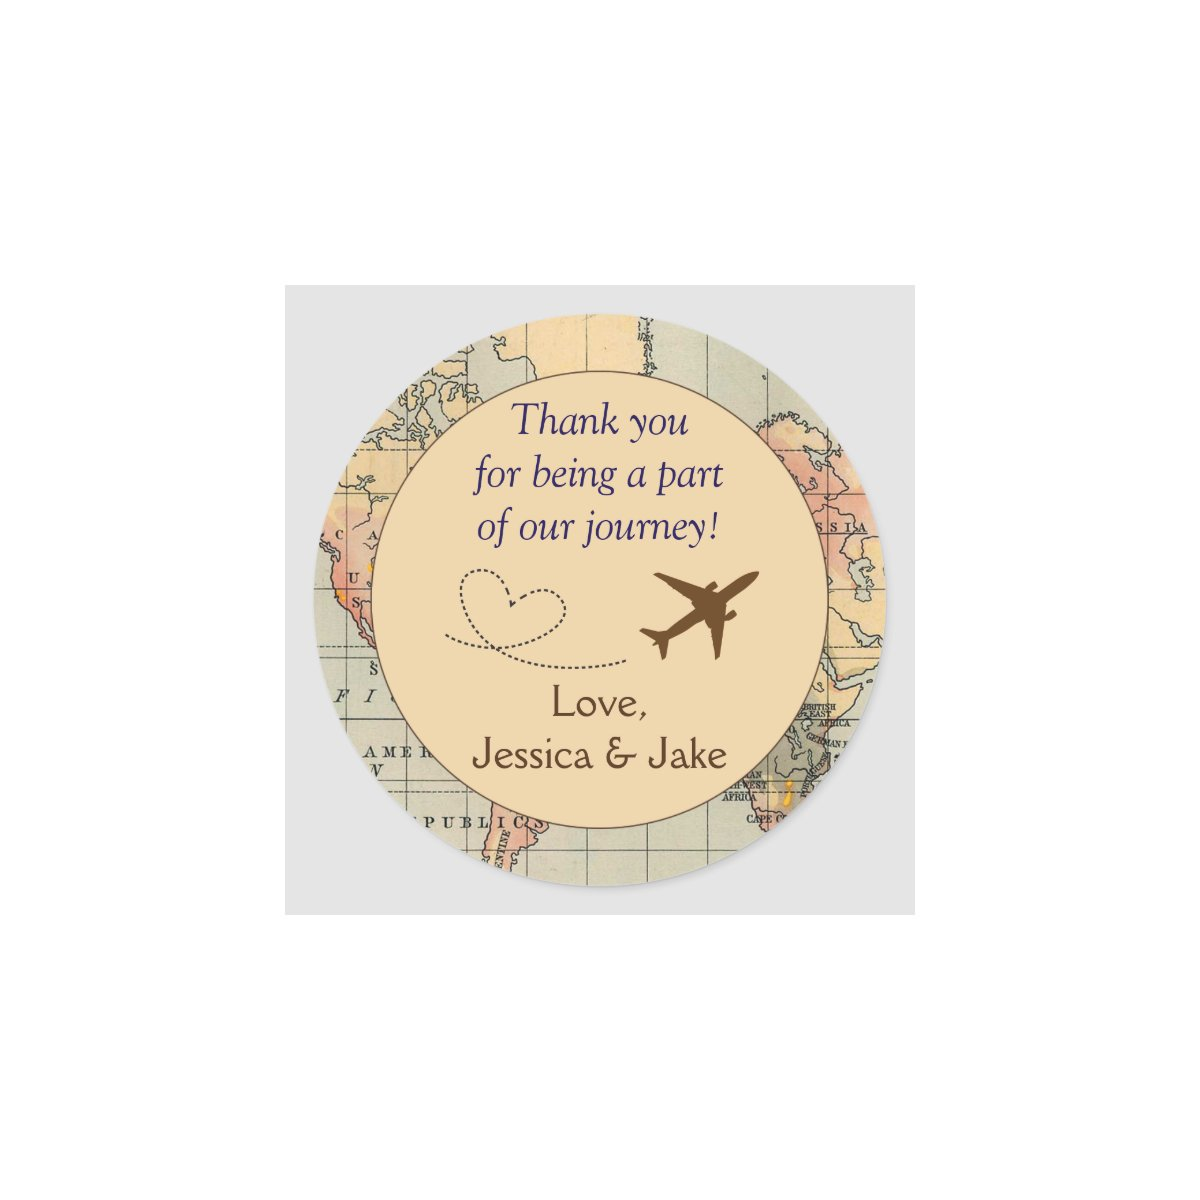 thank you stickers for wedding favors - Wedding Decor Ideas